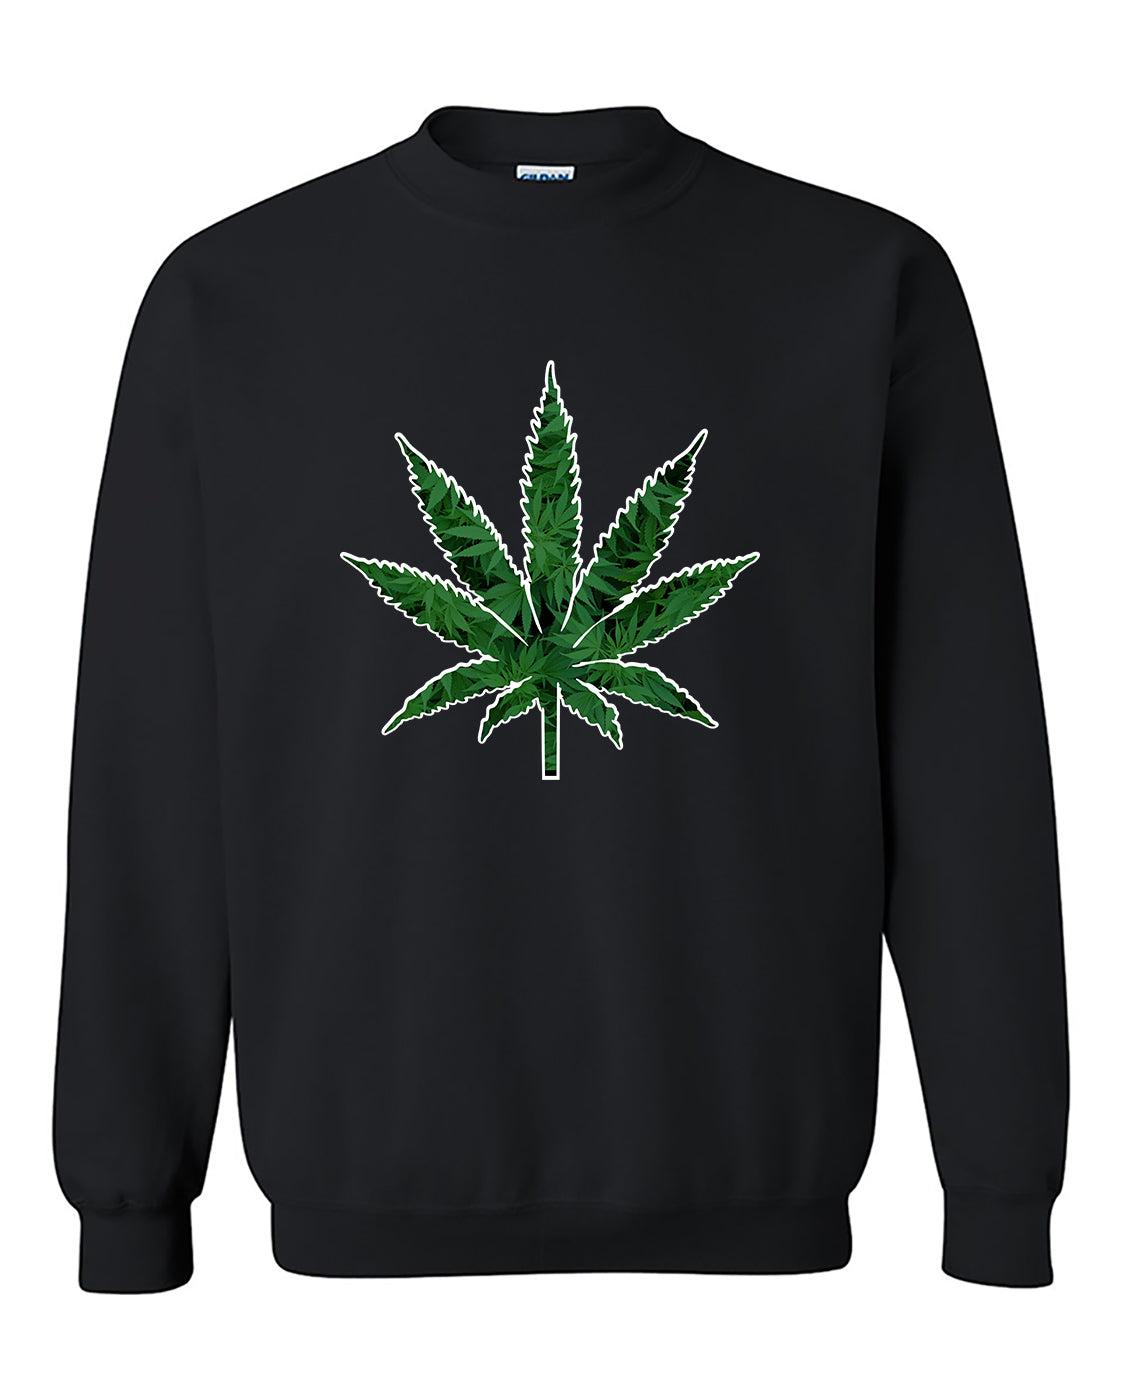 Marijuana Leaf Pot Leaf 420 Weed Marijuana smokers Crewneck Sweater